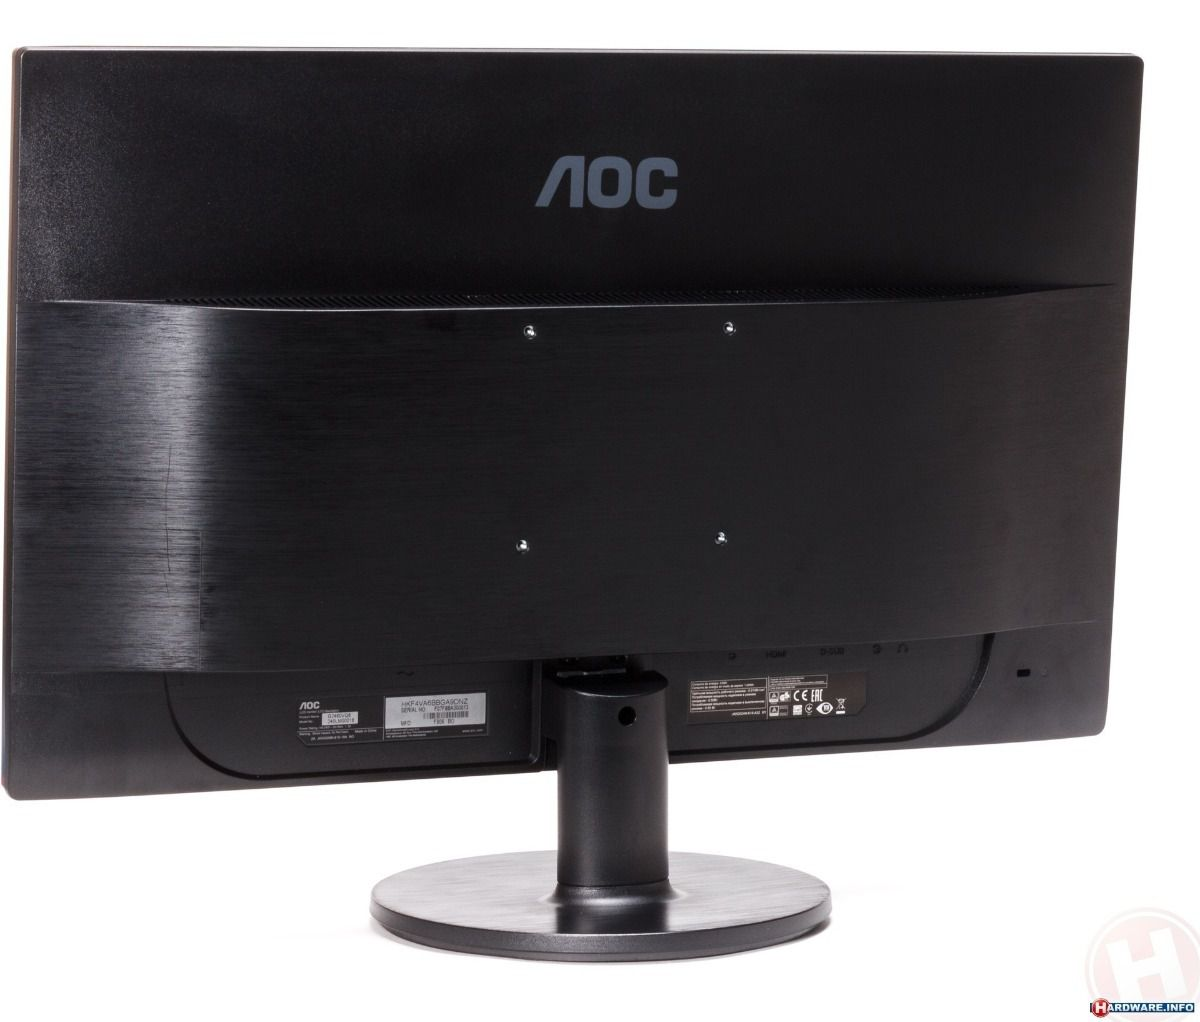 "Monitor 24"" LED AOC Gamer Sniper 75HZ 1MS FULL HD G2460VQ6"